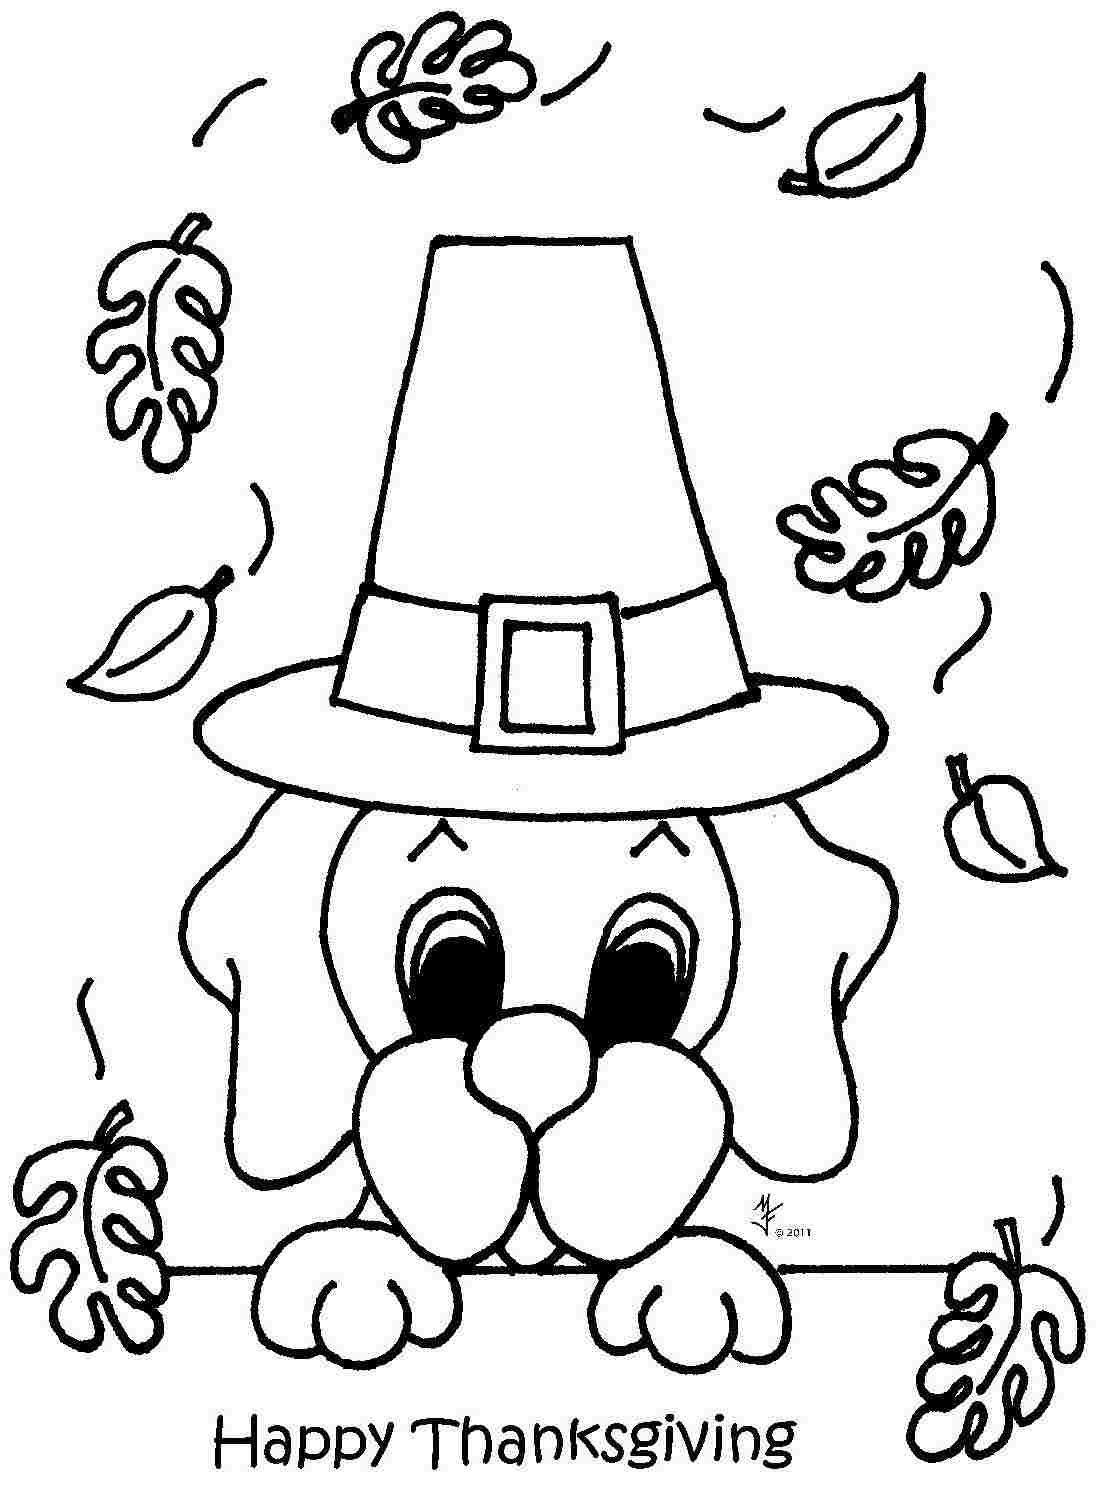 Impressive Design Thanksgiving Coloring Pages Happy Thanksgiving Gallery Of Free Preschool Coloring Pages Page for Kindergarten School Download